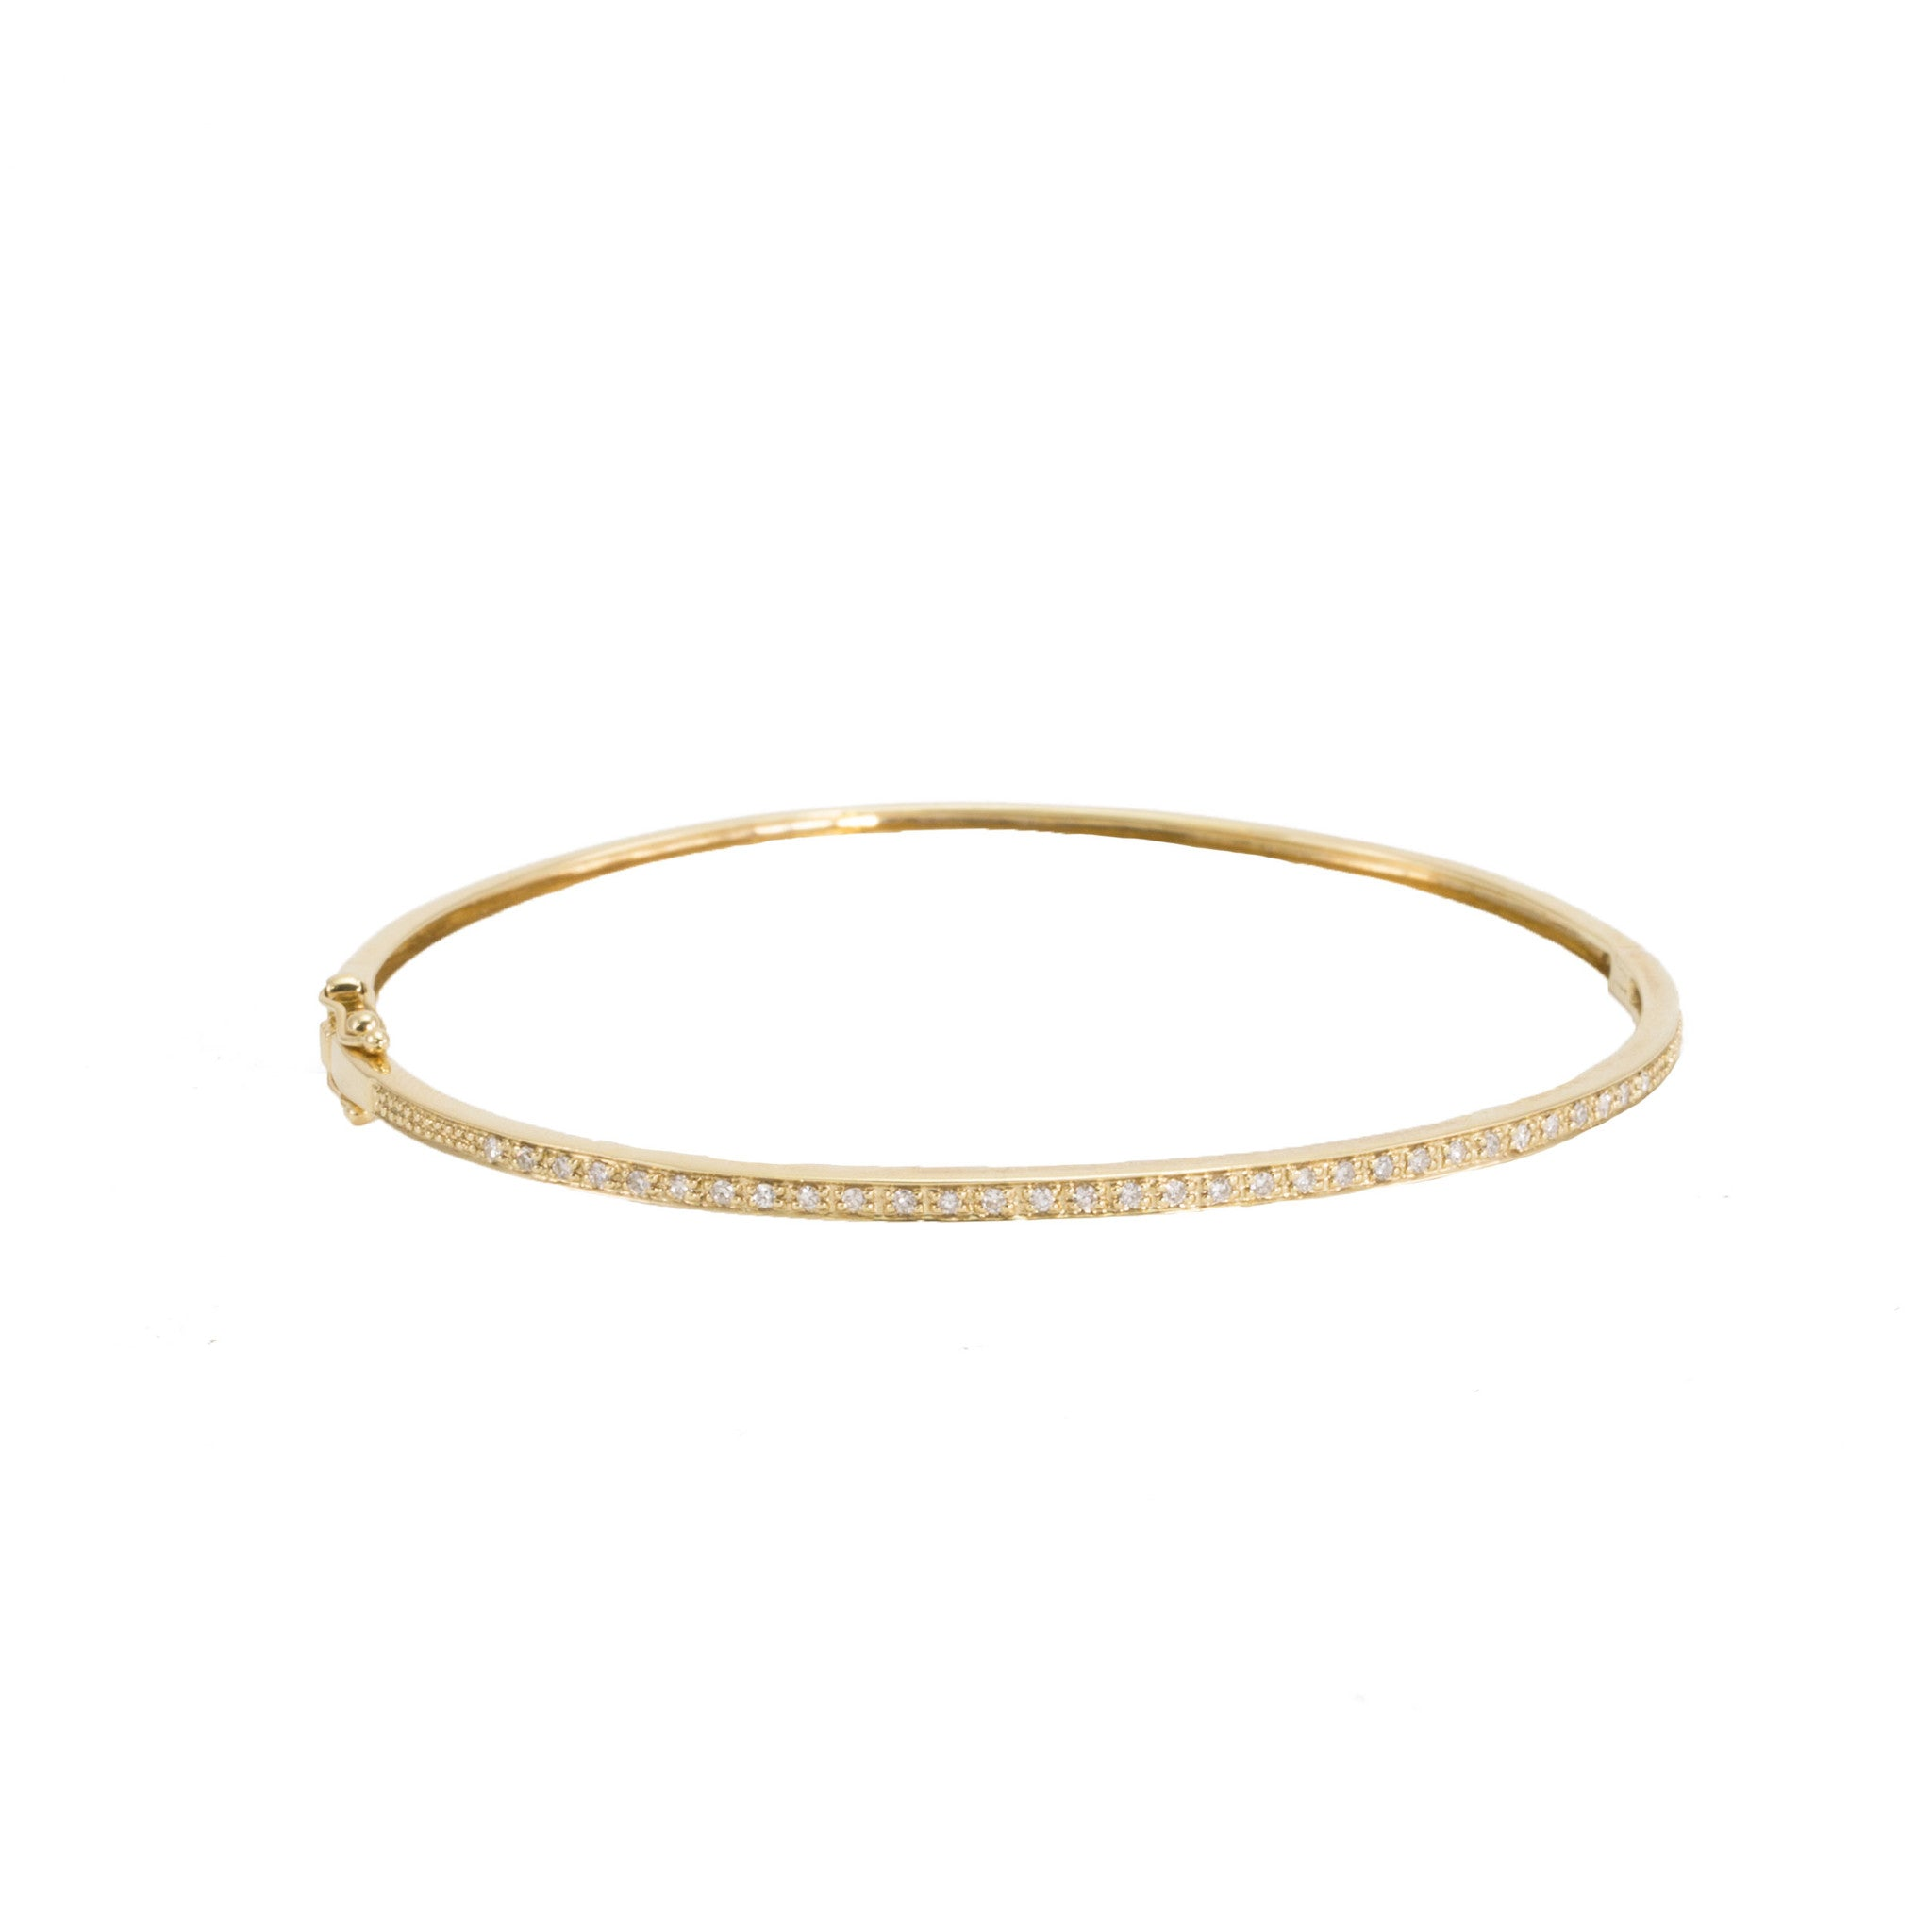 up piece com stamped bracelet inch online cut of without close at bangle set jewelry gold bangles buy borders goldsilver